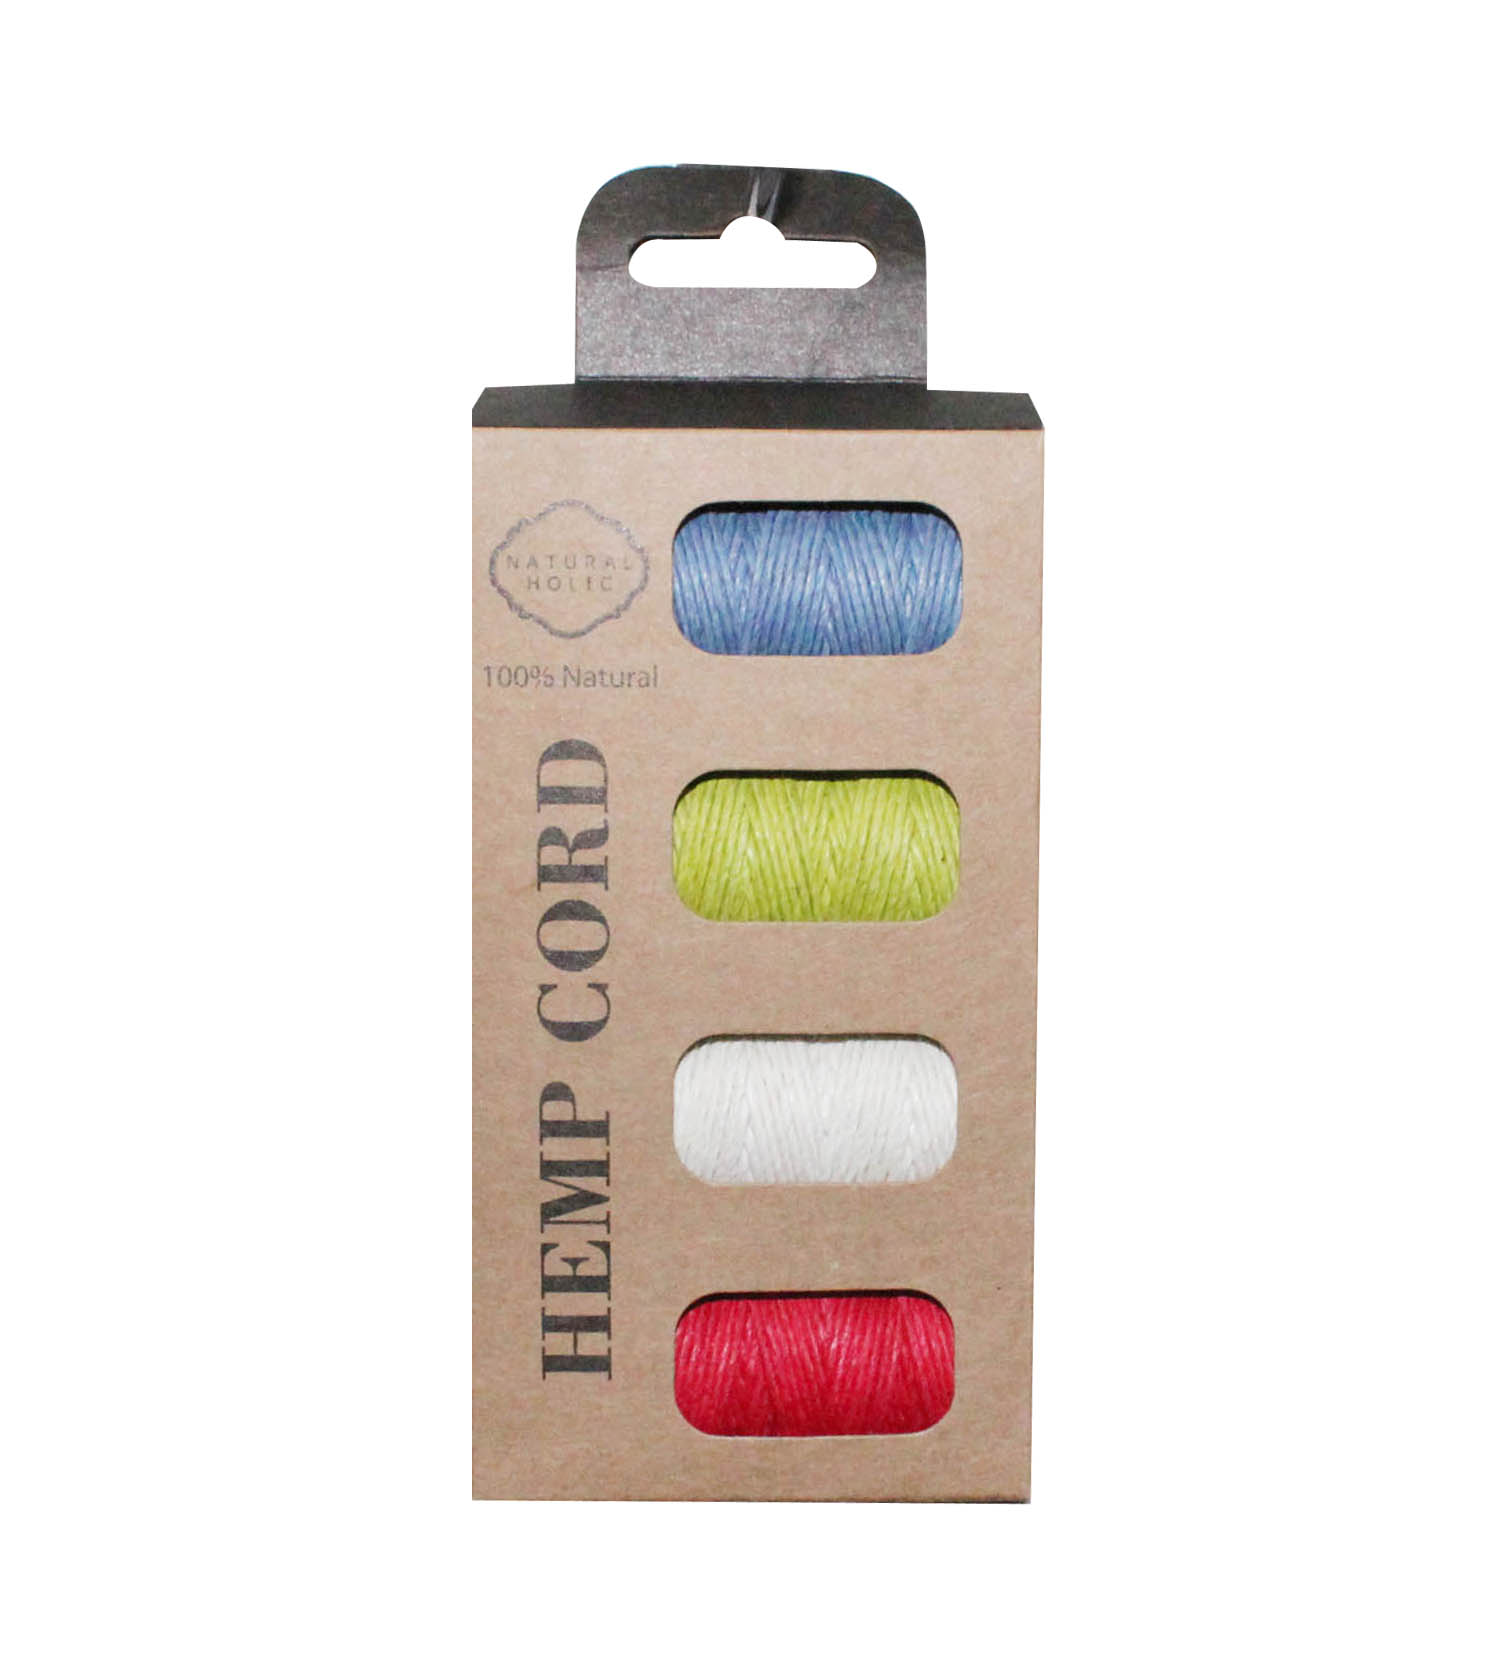 1PCS TO SELL! 4 IN 1 25yards Boxed HEMP CORD SET